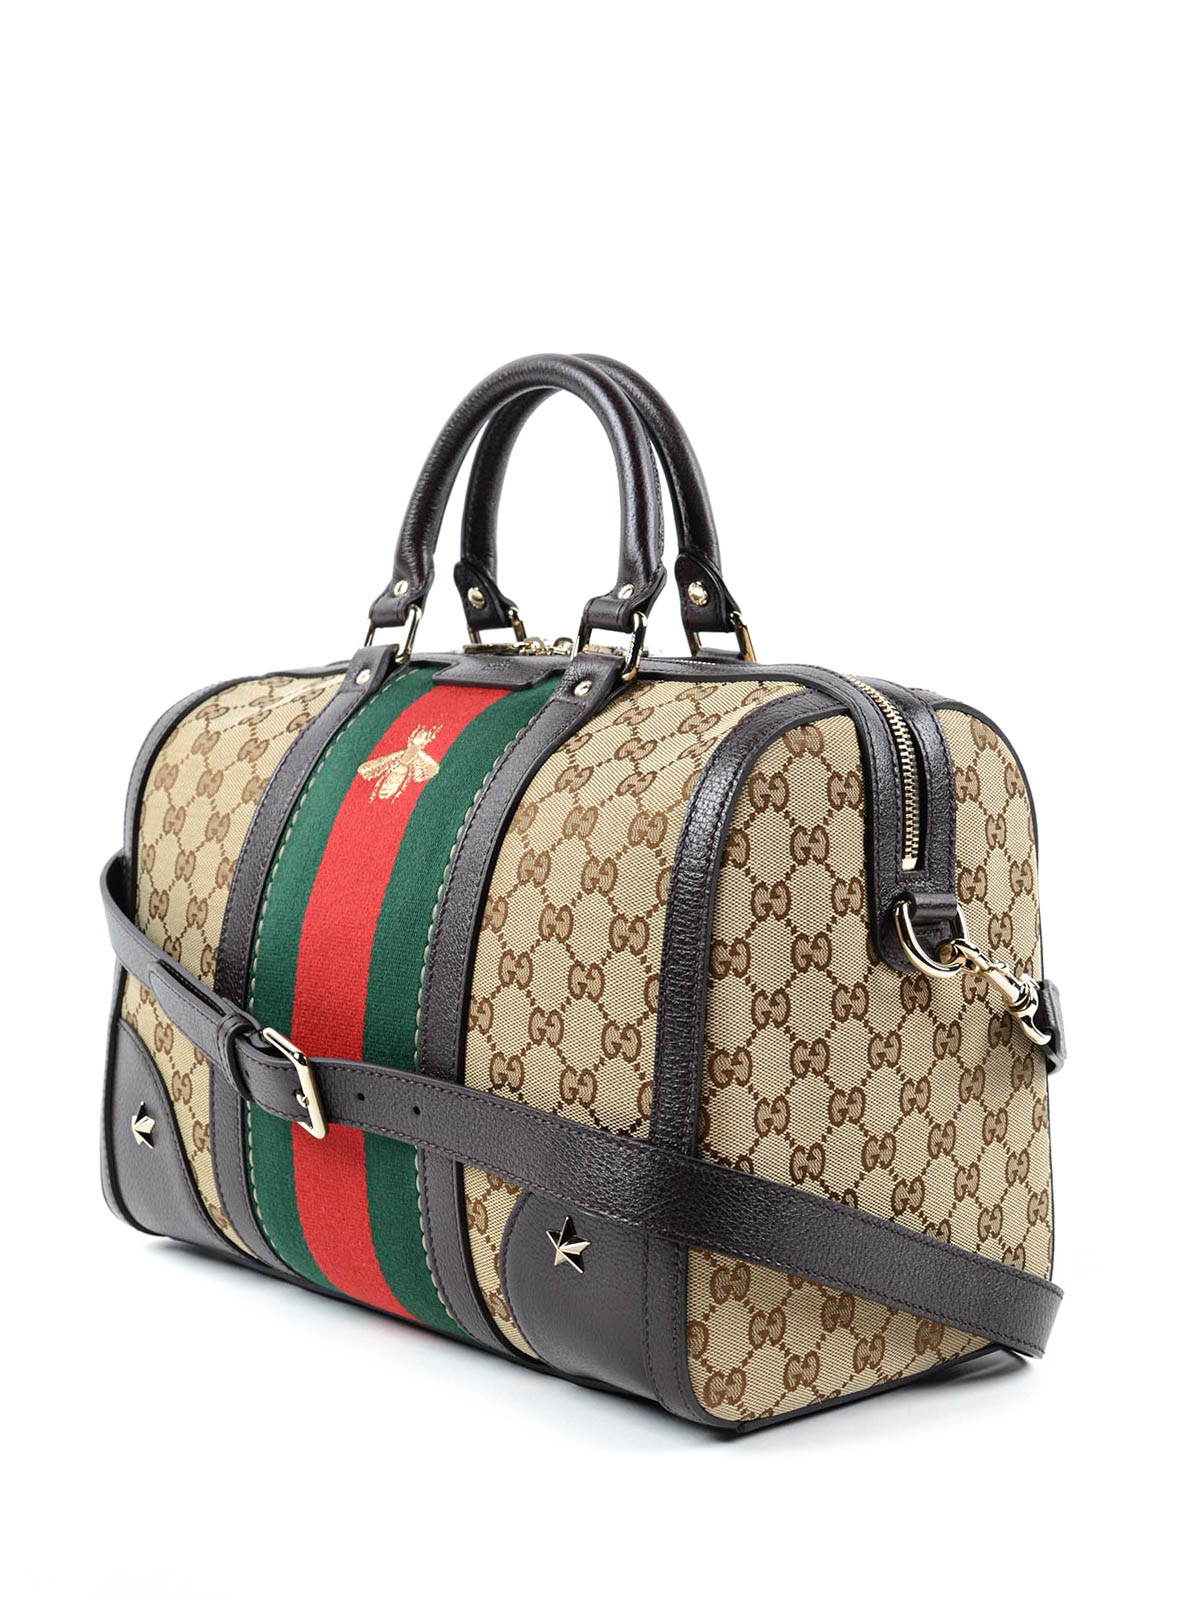 0639a0a6f9ea6 Vintage Web embroidered bag by Gucci - Luggage   Travel bags